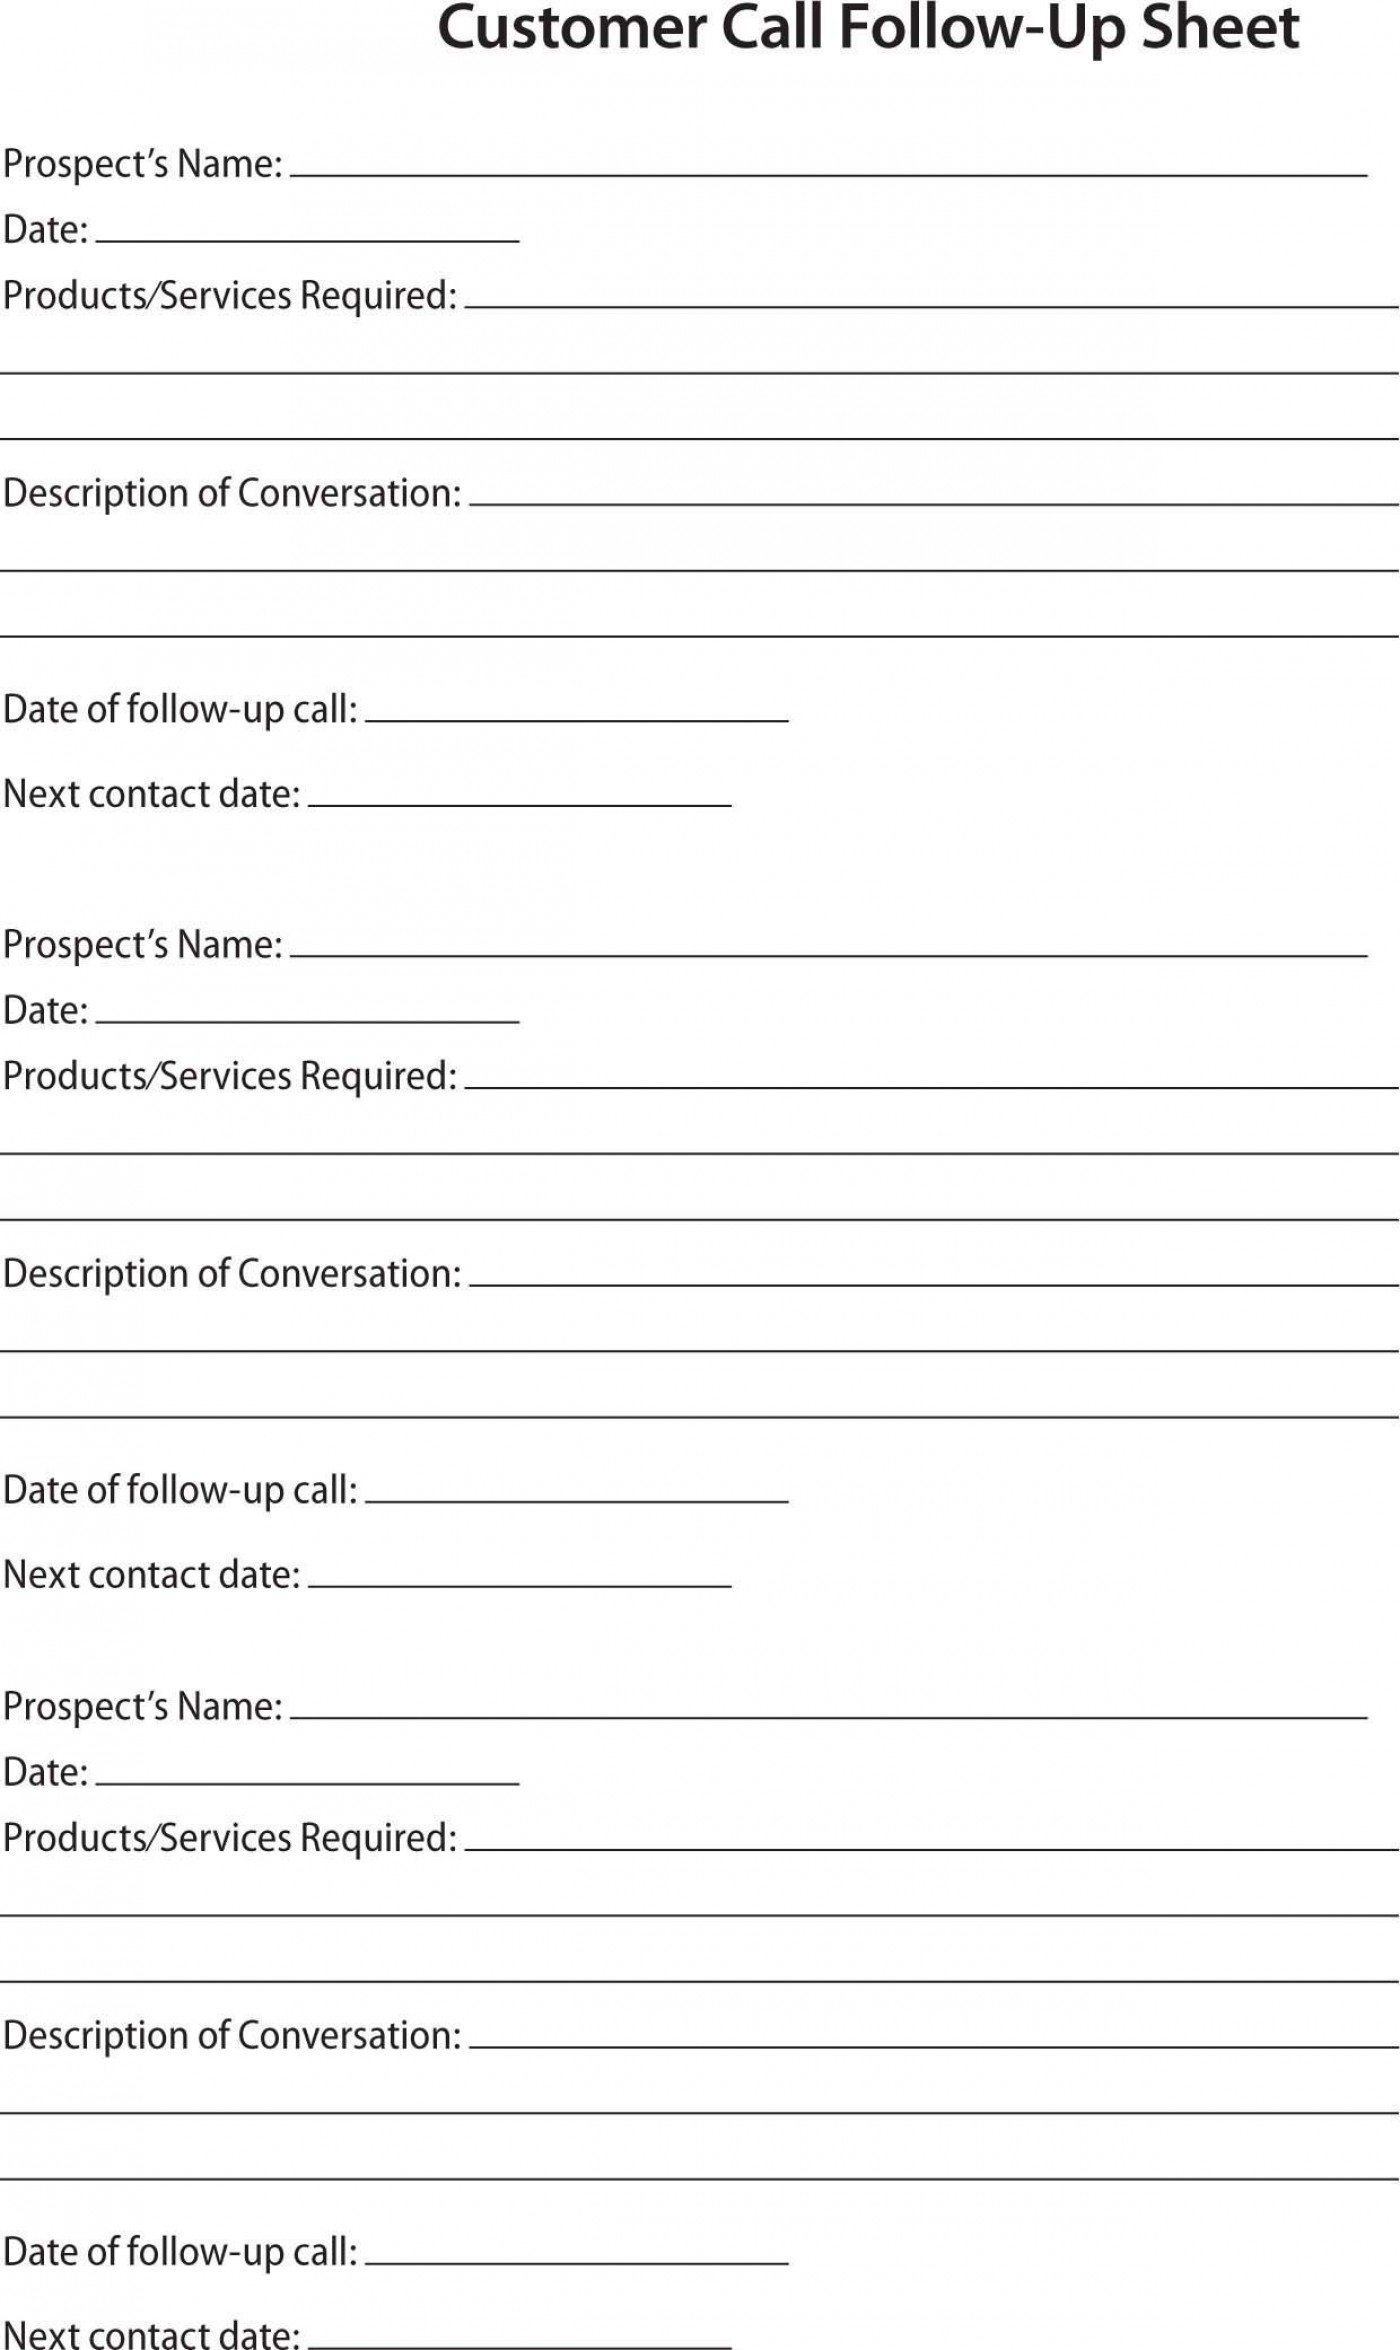 005 Exceptional Client Information Form Template Excel Inspiration 1400